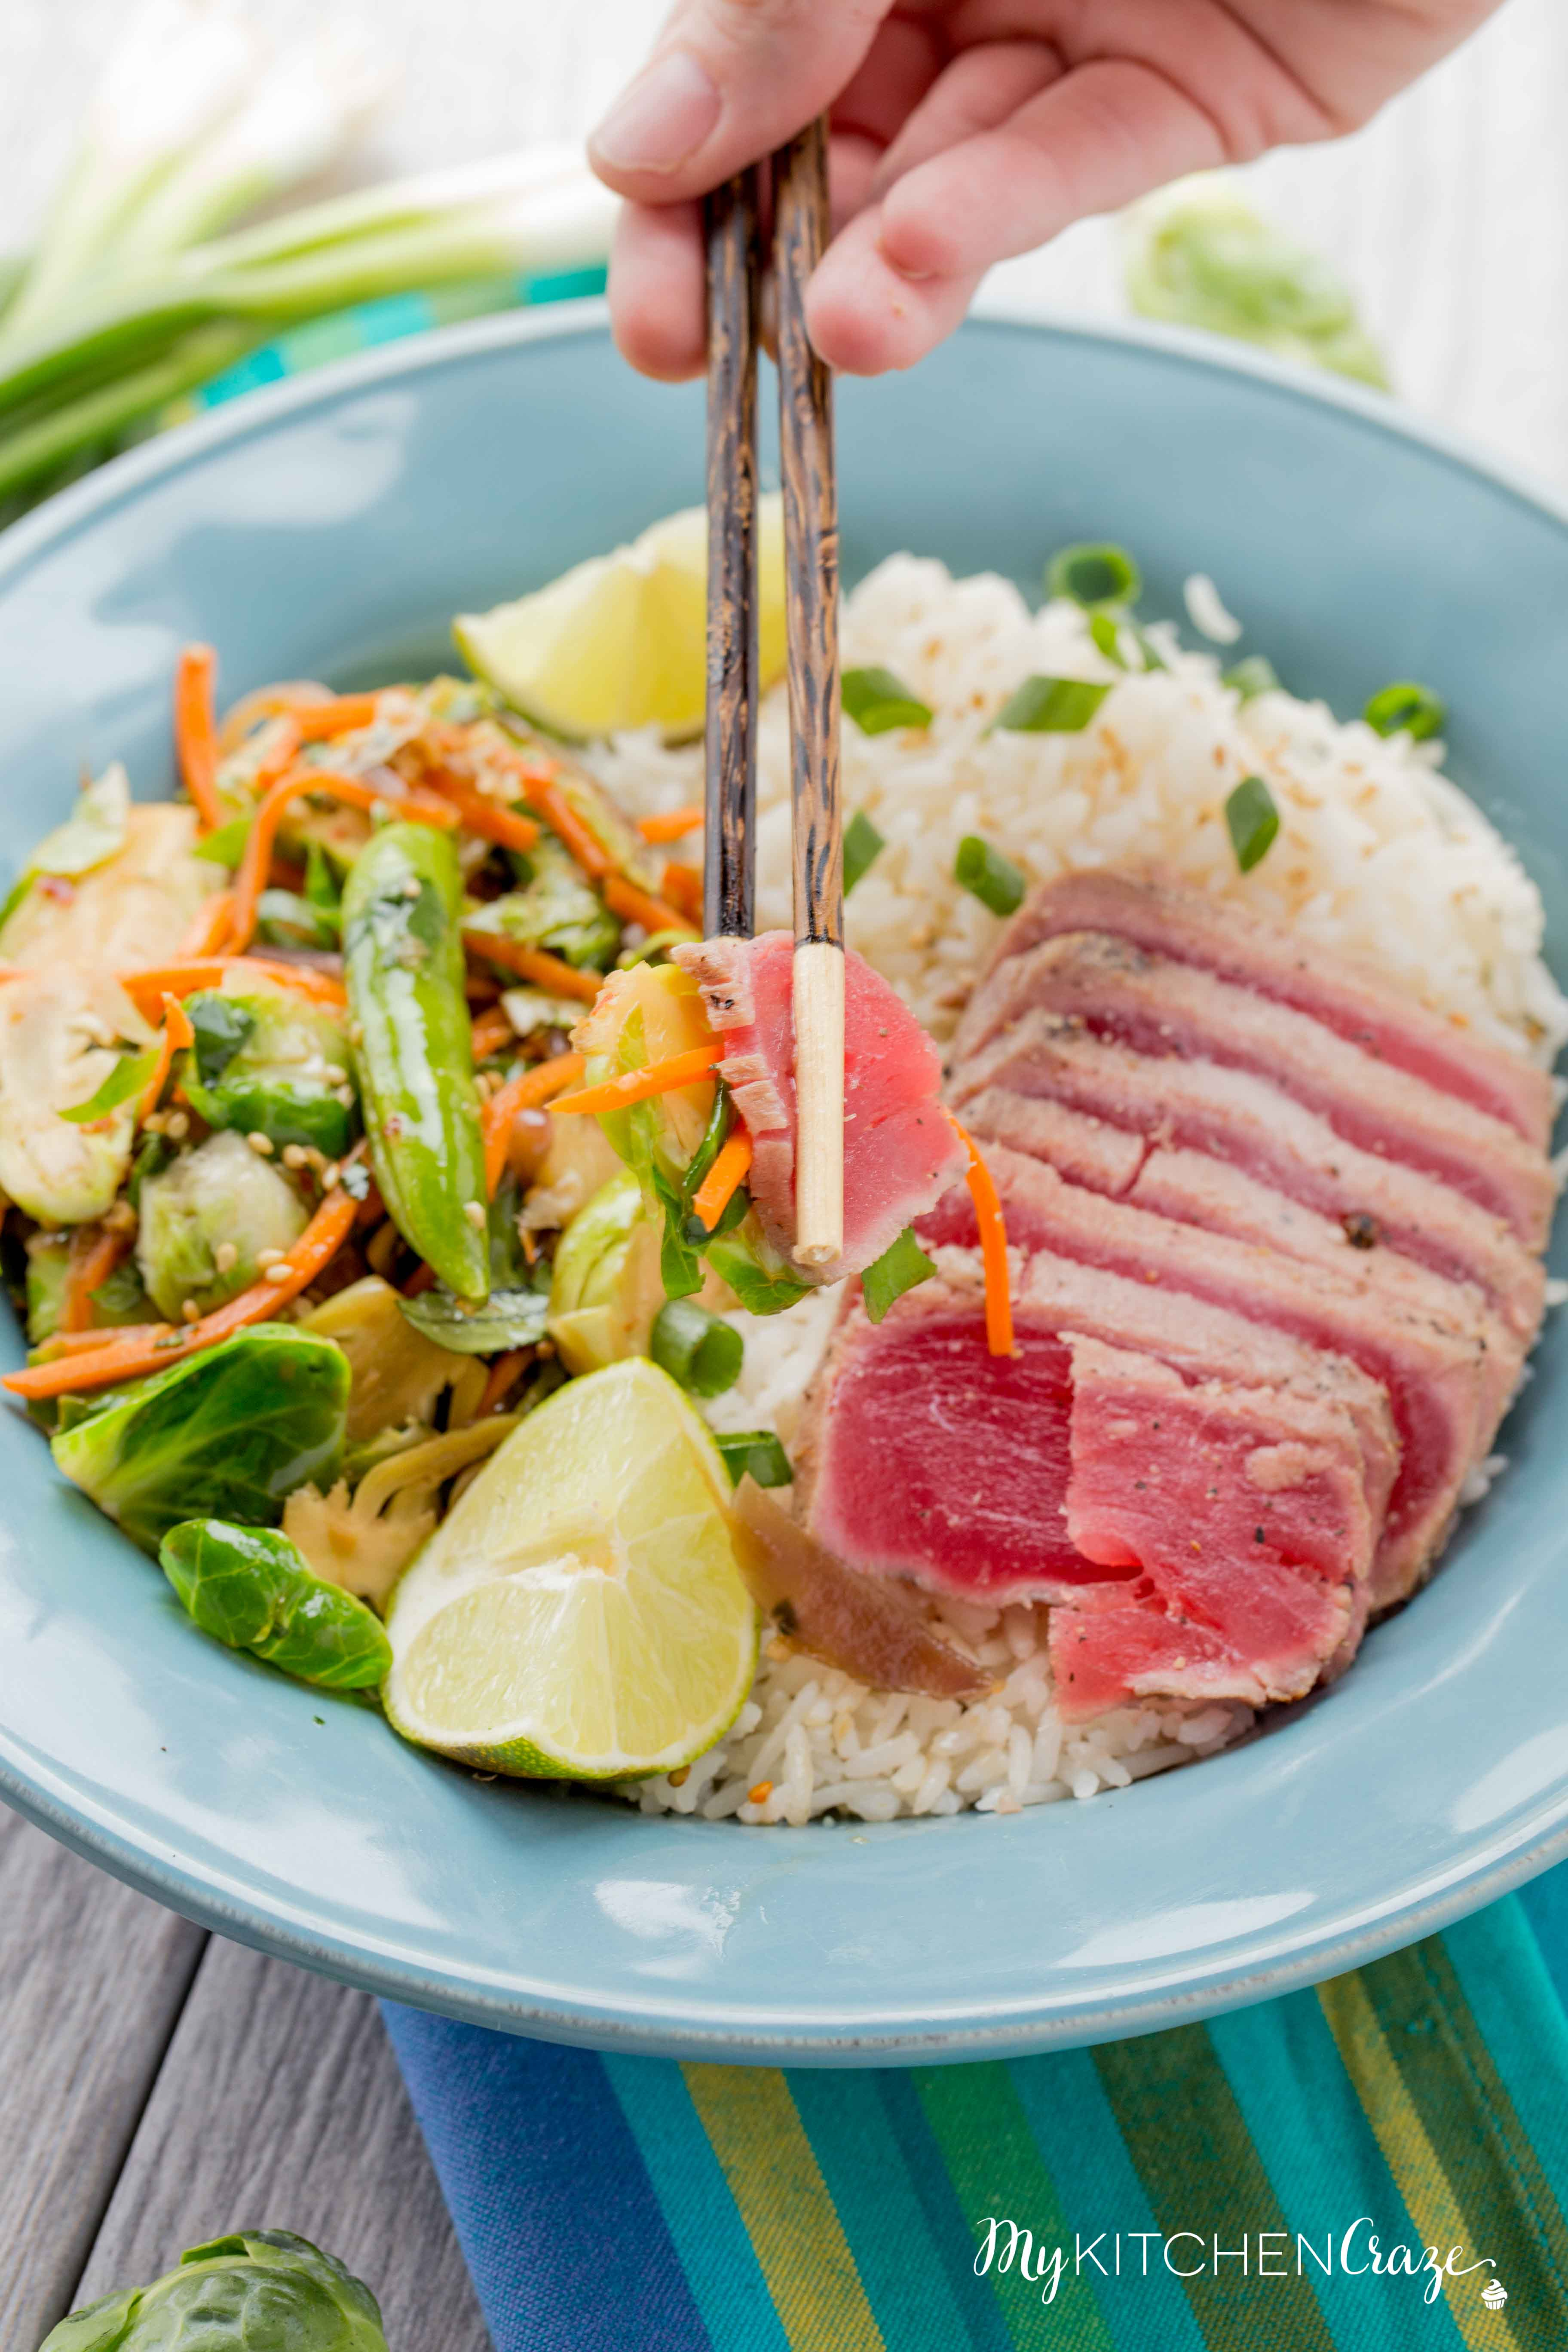 Ahi Tuna Rice Bowls ~ mykitchencraze.com ~ Enjoy these delicious Ahi Tuna Rice Bowls for dinner. These rice bowls are loaded with sautéed vegetables and fresh quality Ahi Tuna! Have a healthy delicious meal on your table within 30 minutes!